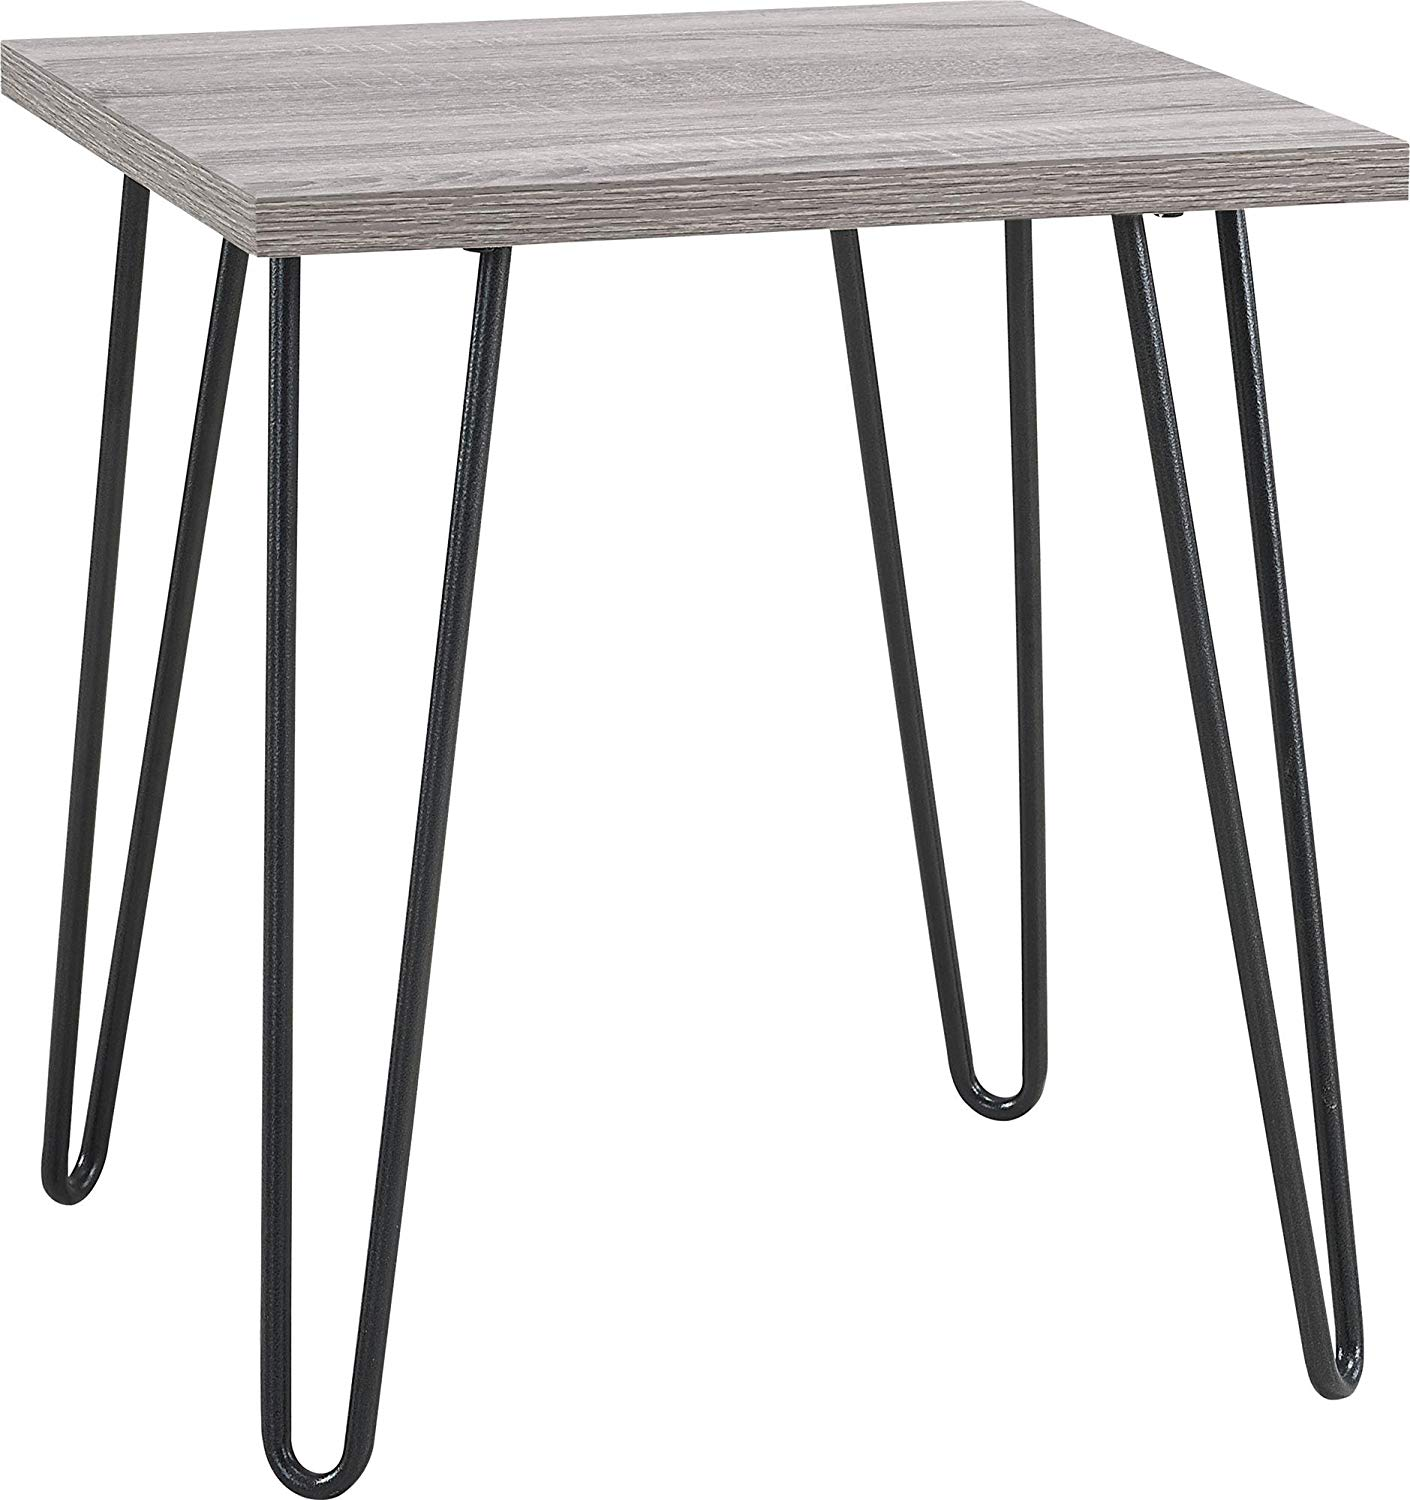 ameriwood home owen retro end table sonoma oak gunmetal gray light accent tables kitchen dining black gold ornaments coffee squares linens mirrored desk clear acrylic sofa outdoor